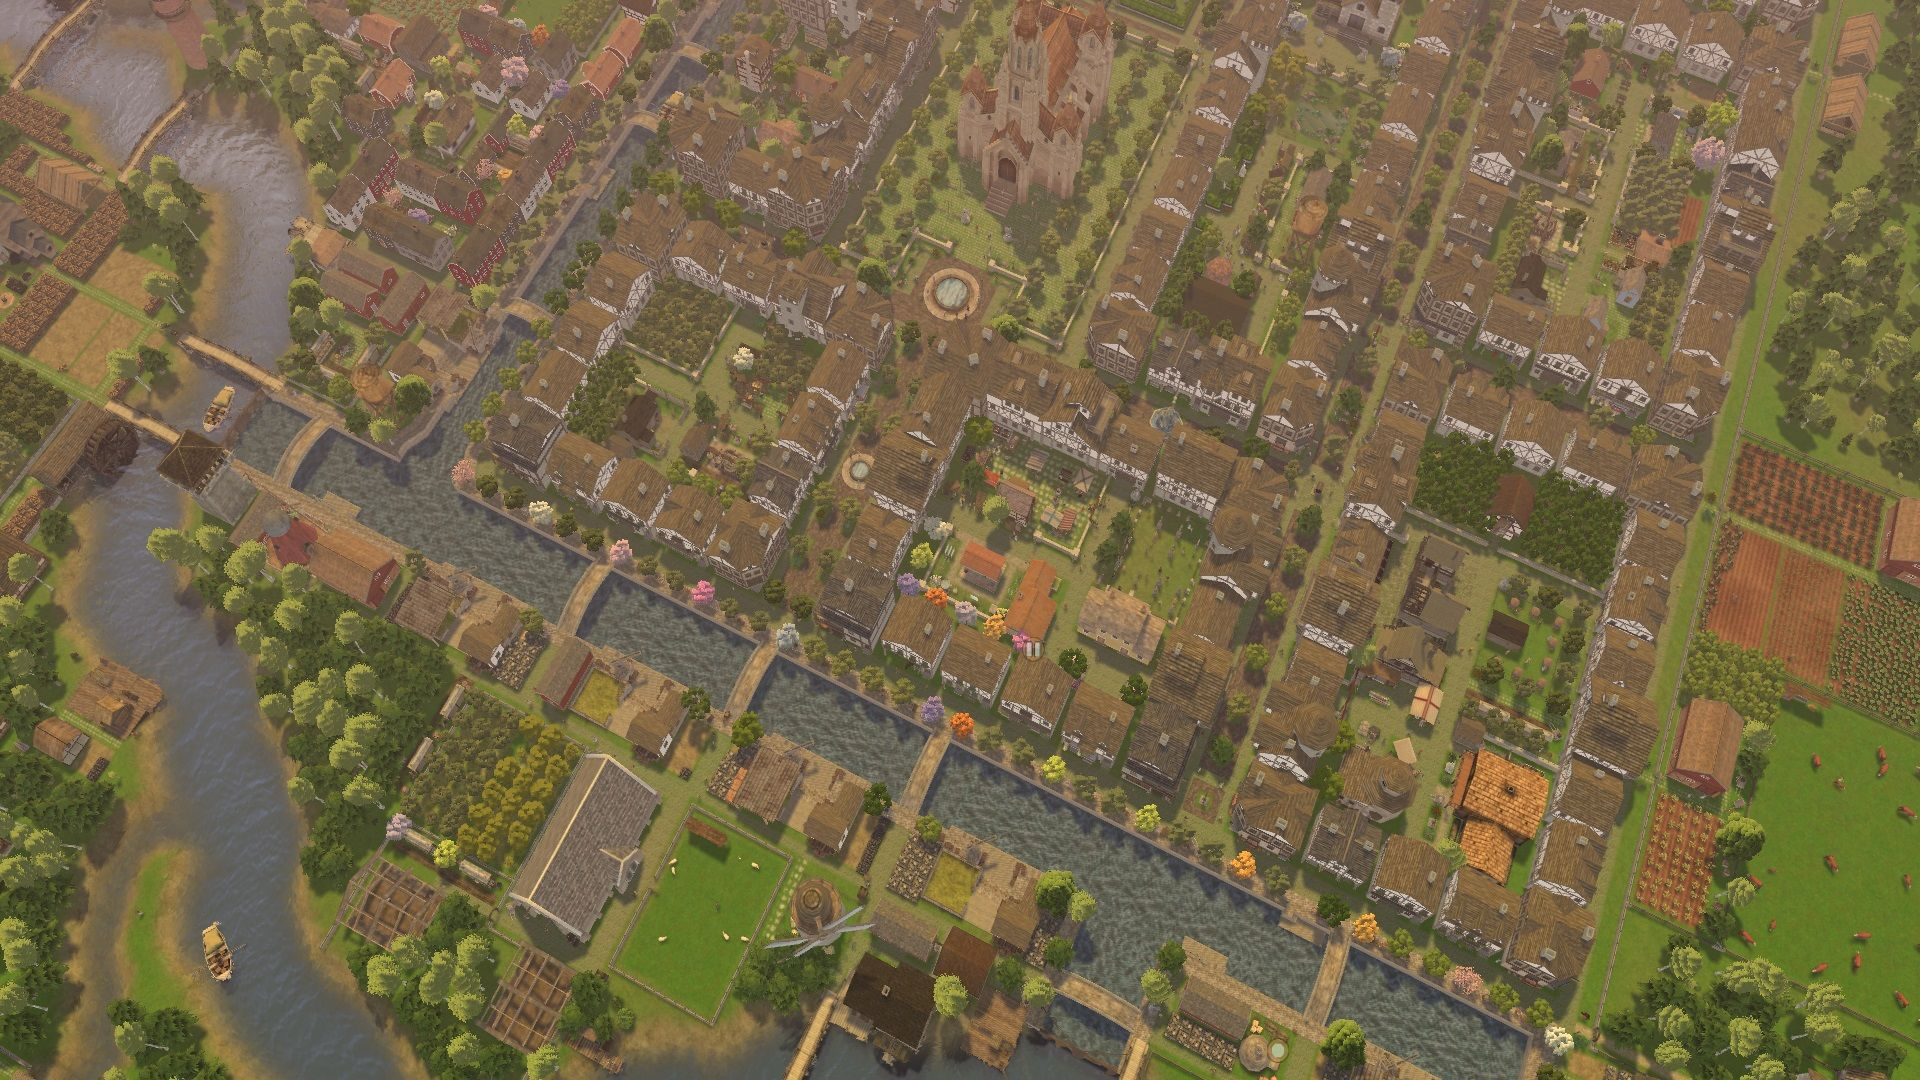 62 Best [media] Game Banished Images On Pinterest - Banished Game Town Layout , HD Wallpaper & Backgrounds